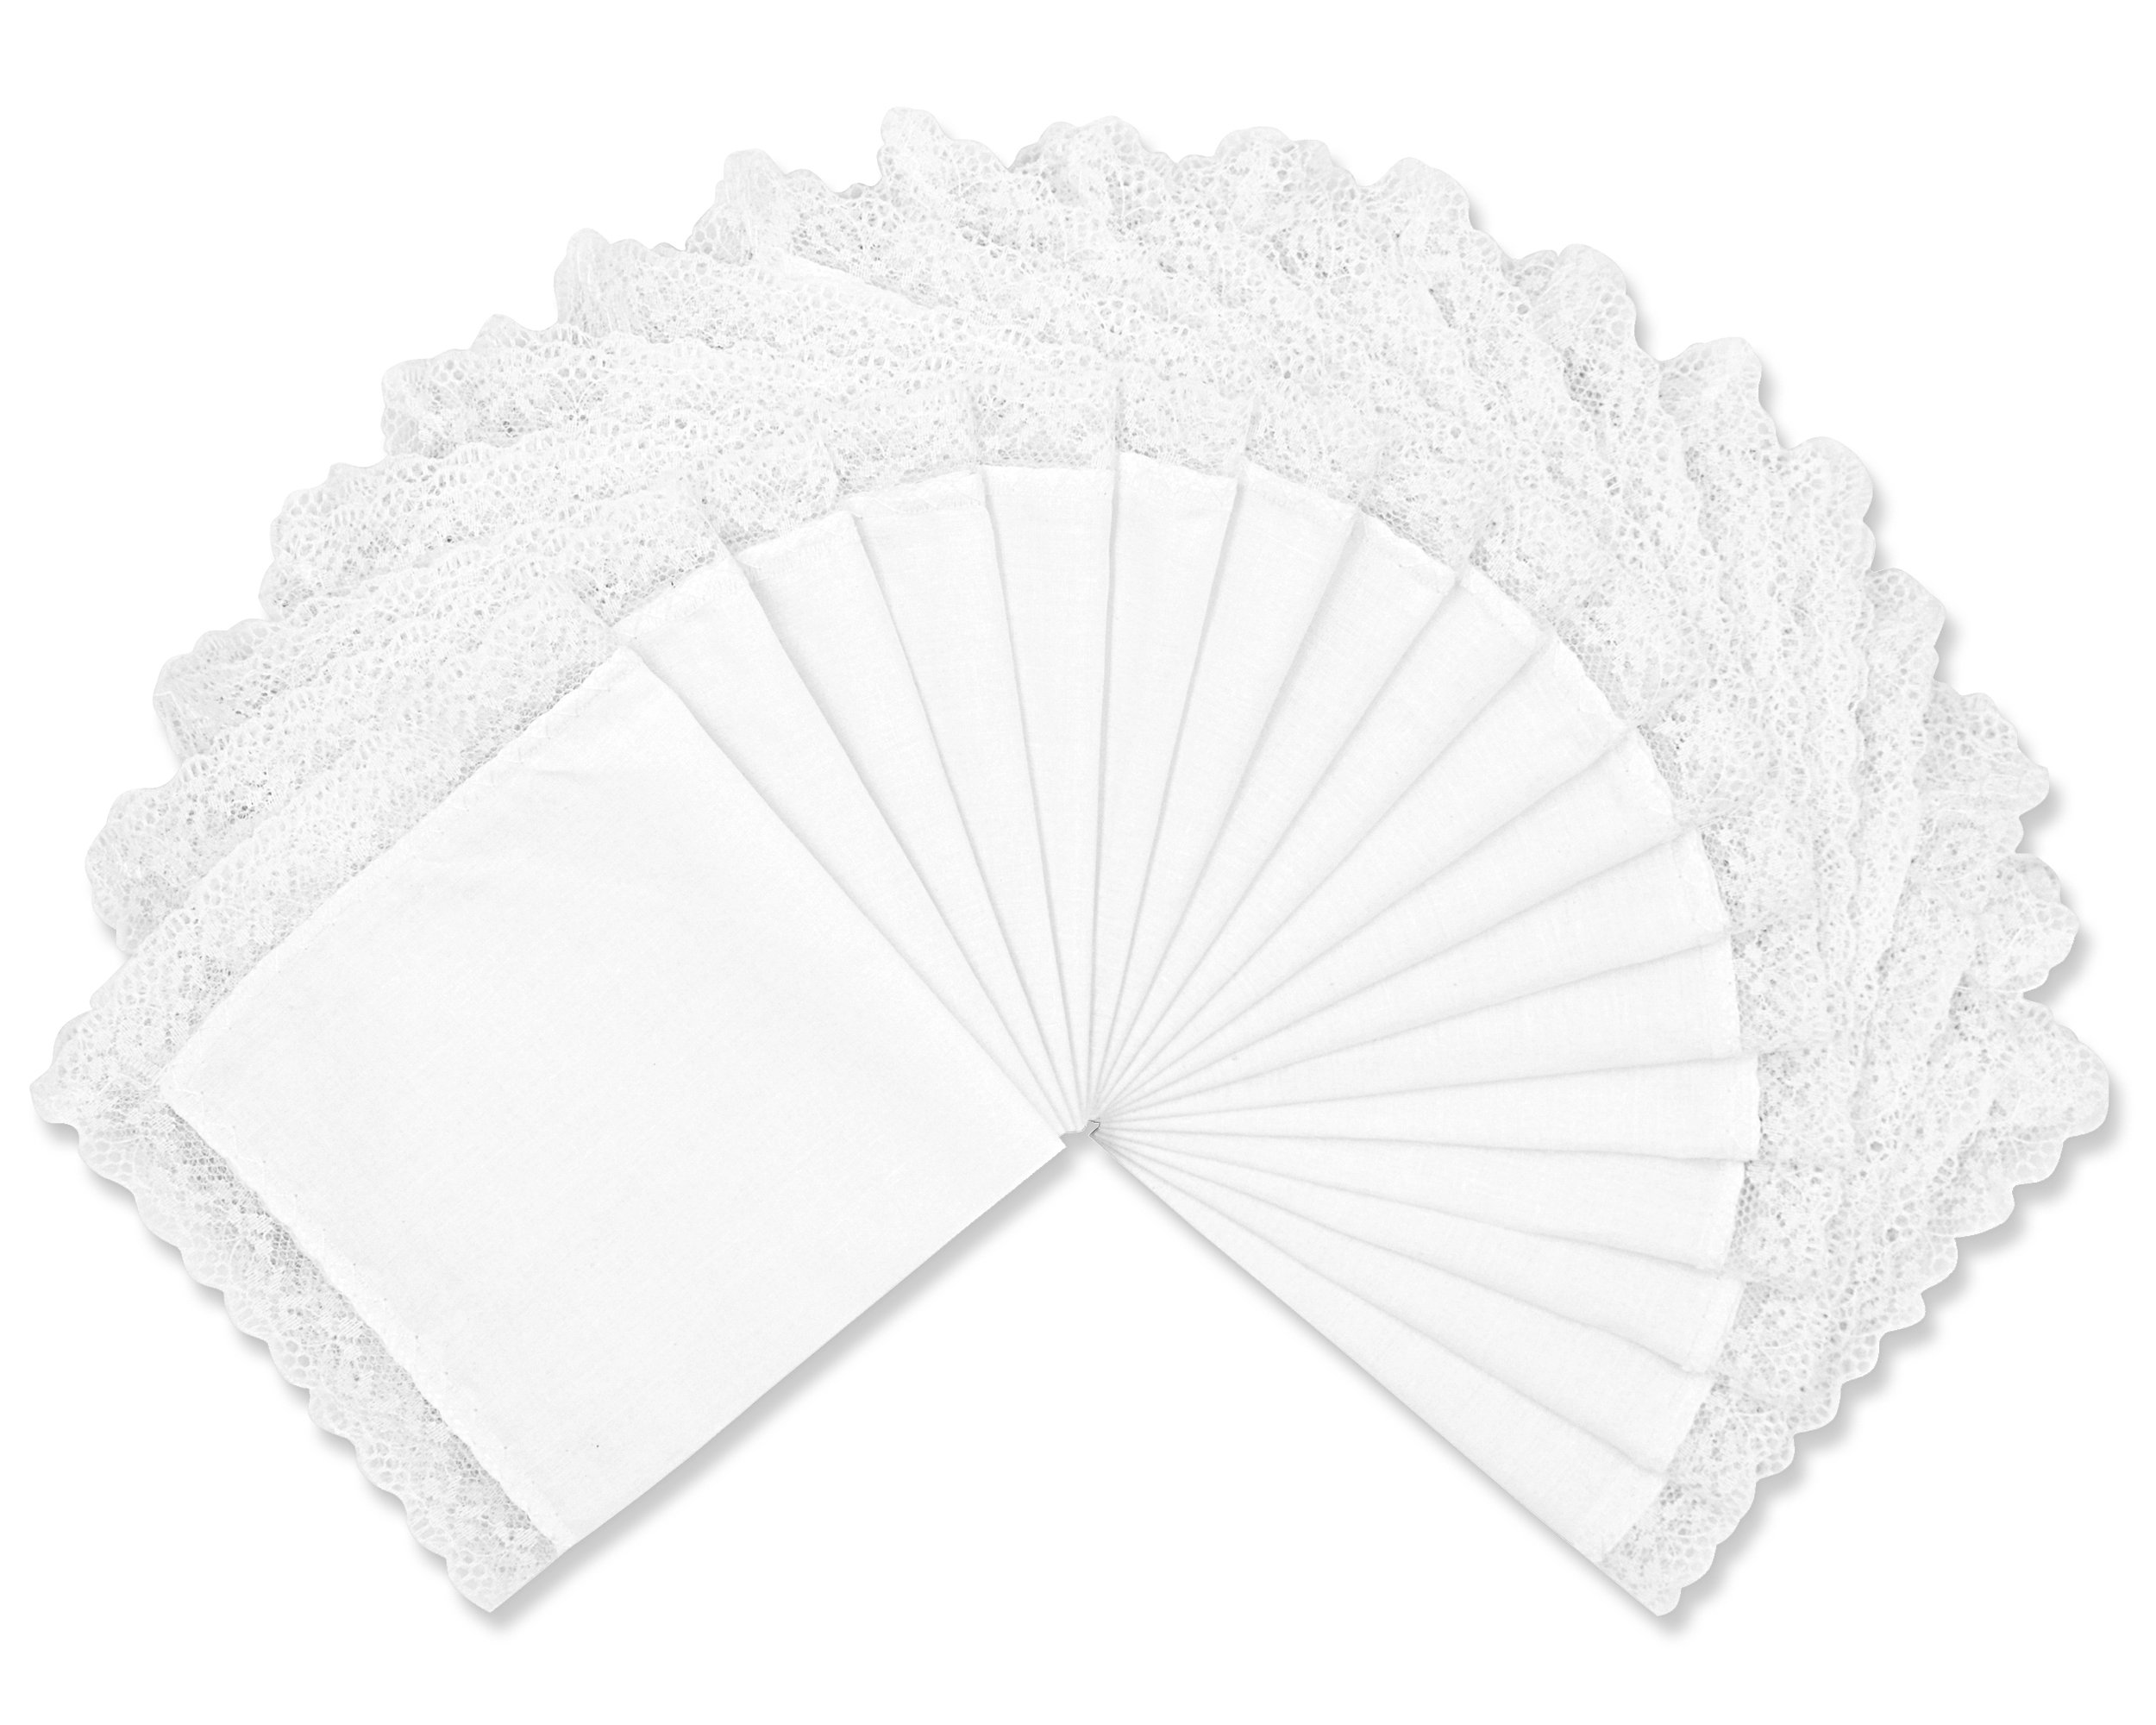 Milesky Solid White Wedding Cotton Handkerchiefs with Lace Edges Square 10 x 10'', LH03 (LH0318)